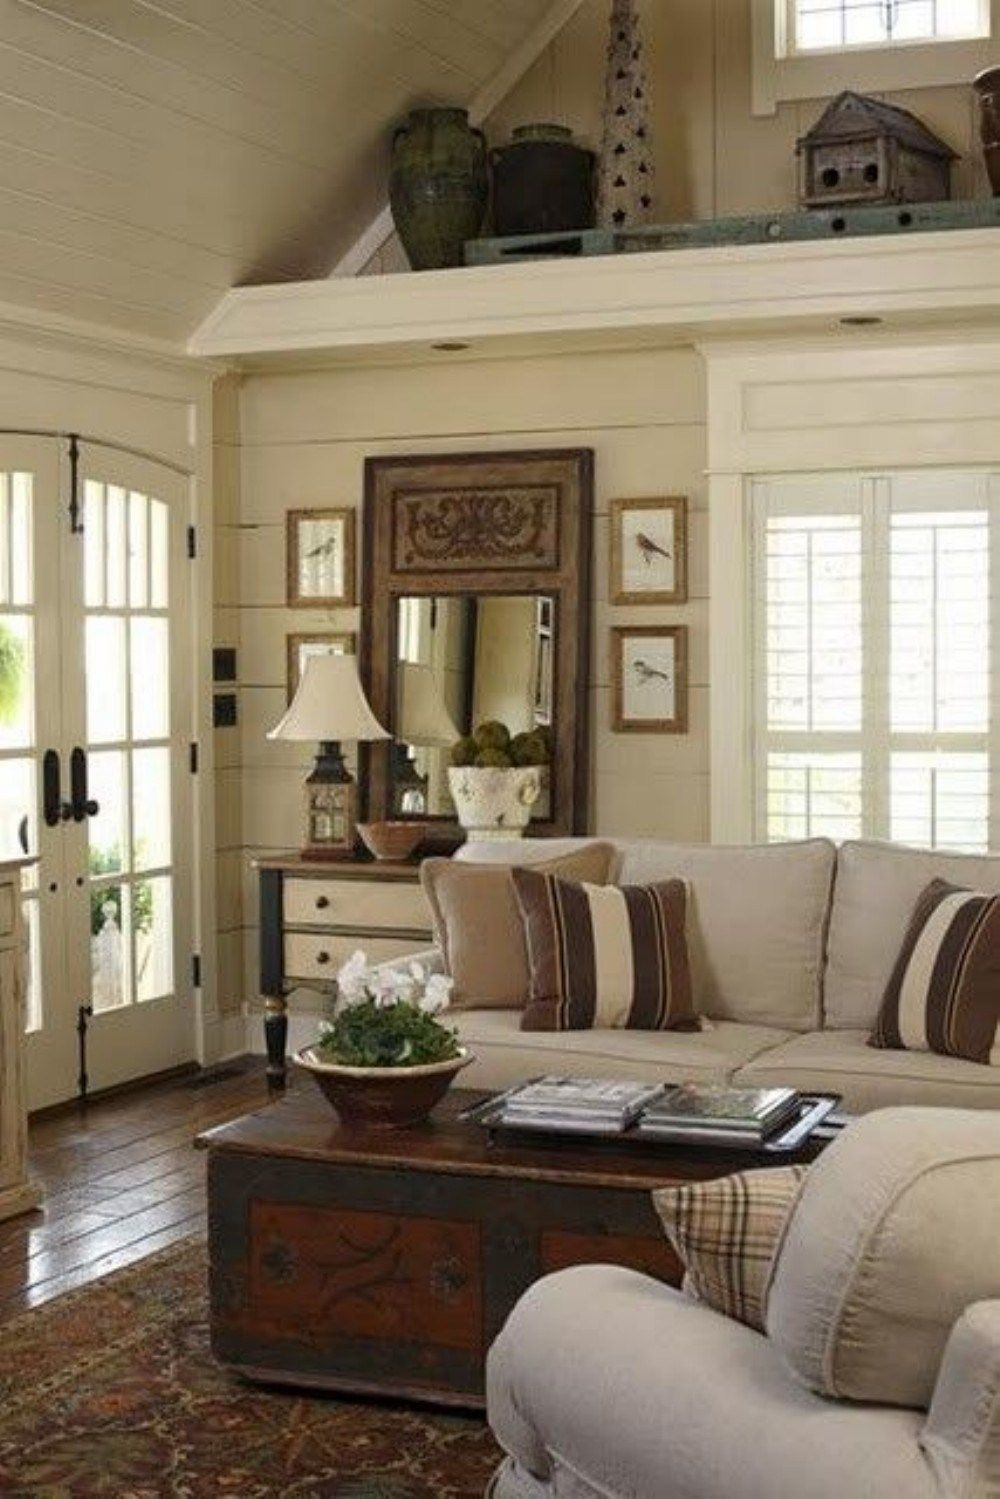 French Country Living Room Design Ideas (21)   Coo Architecture Part 42